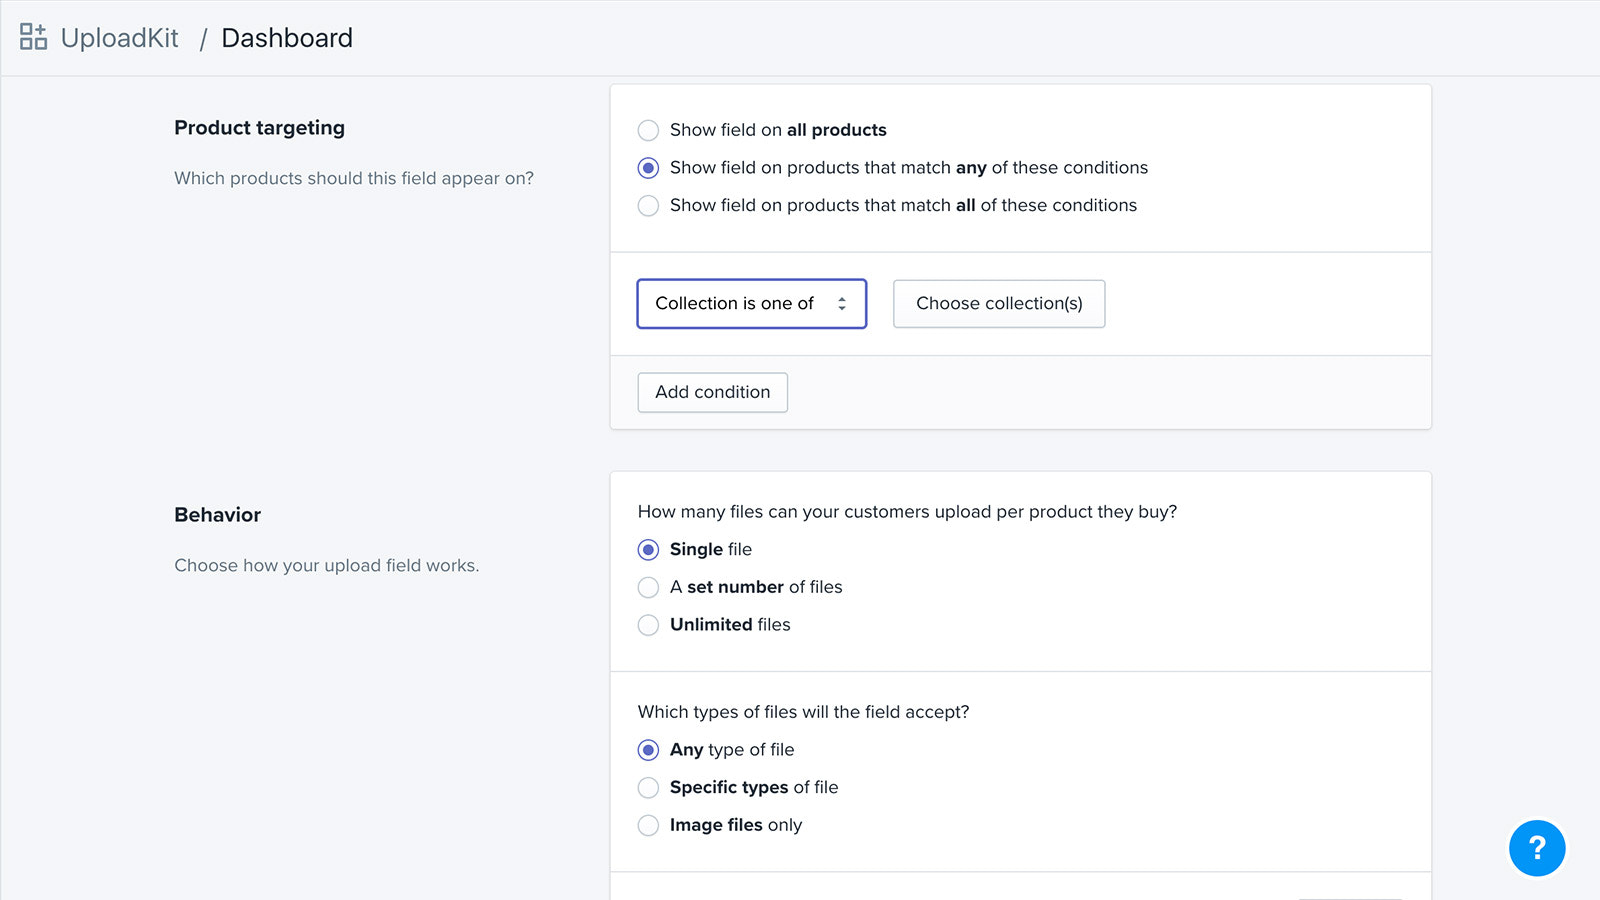 Part of the admin interface showing some of the options